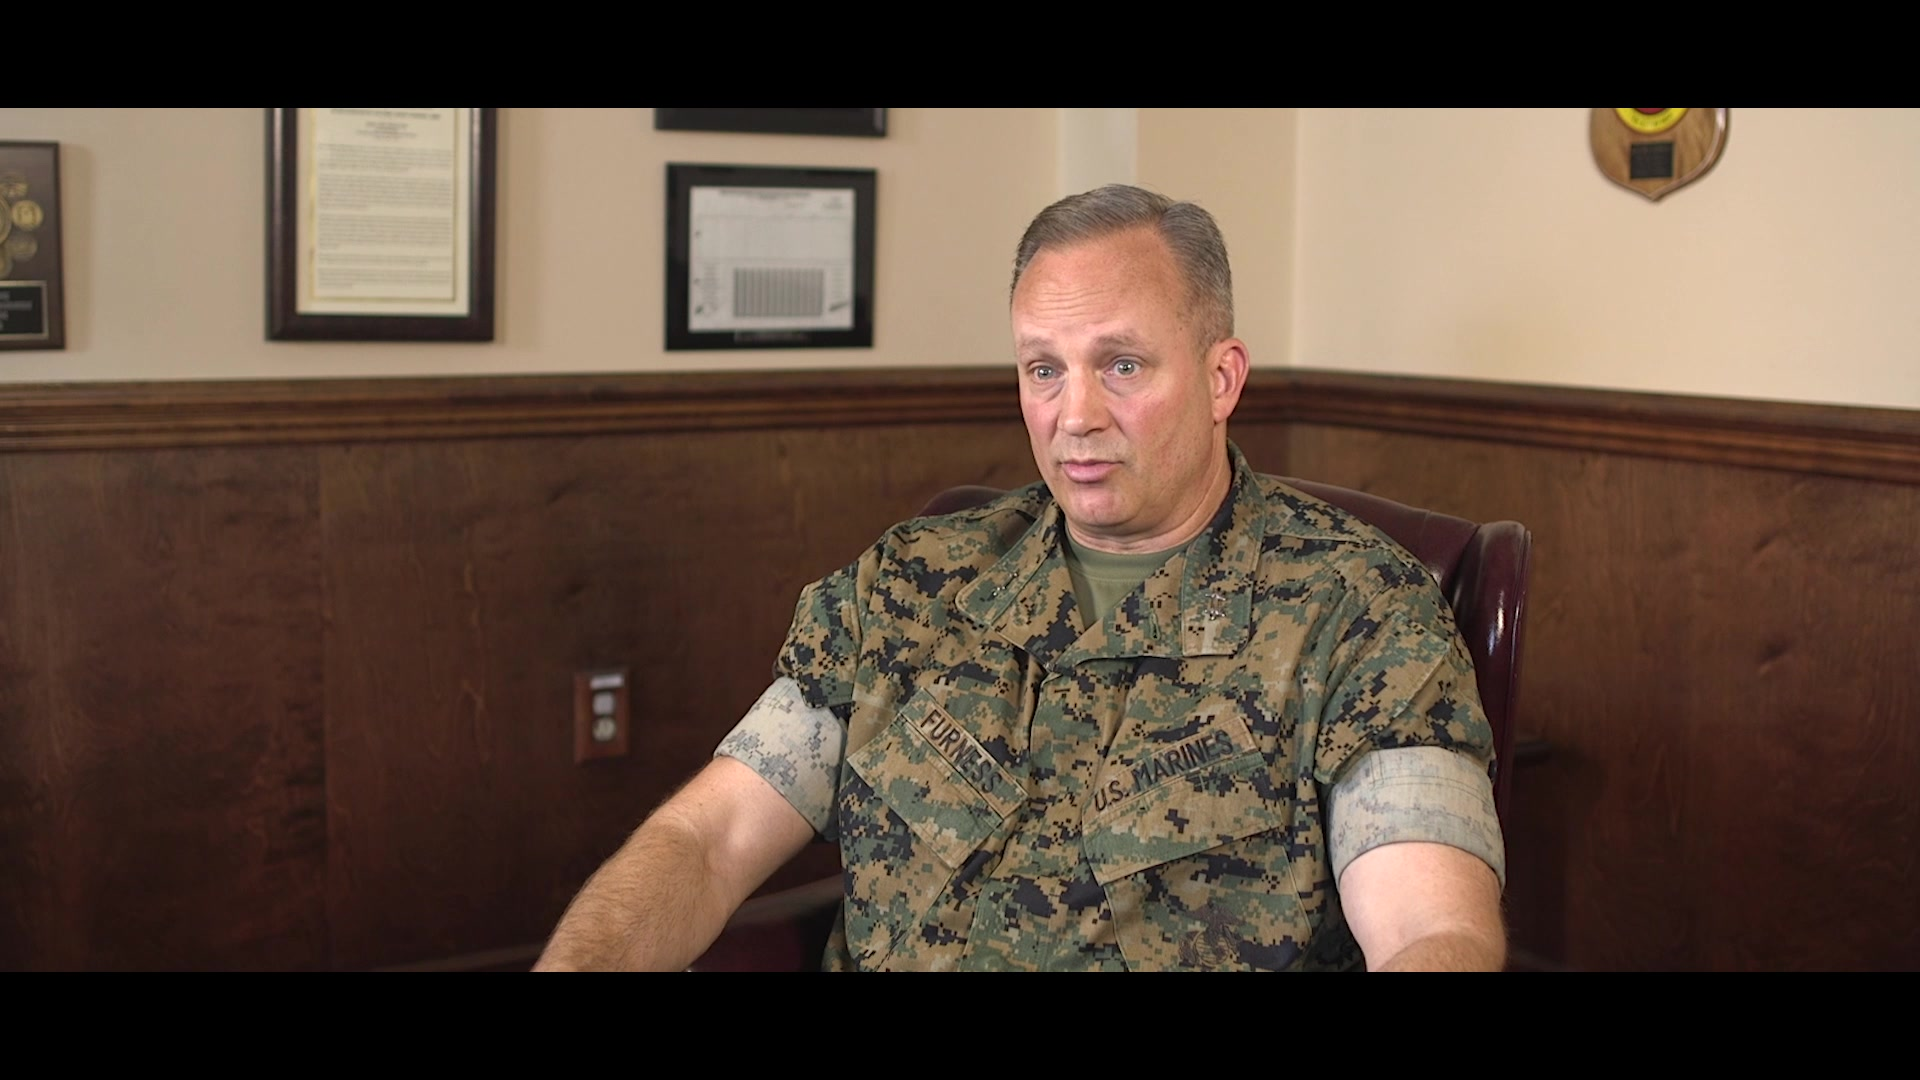 U.S. Marine Corps Maj. Gen. David J. Furness, the Commanding General (CG) of 2d Marine Division (MARDIV), reflects on his creation of the 2d MARDIV Competition Order as part of the series Reflections on Command at Camp Lejeune, North Carolina, May 28, 2020. Reflections on Command is a nine-week video series highlighting Furness' time as the 2d MARDIV CG leading up to his Change of Command in August 2020.